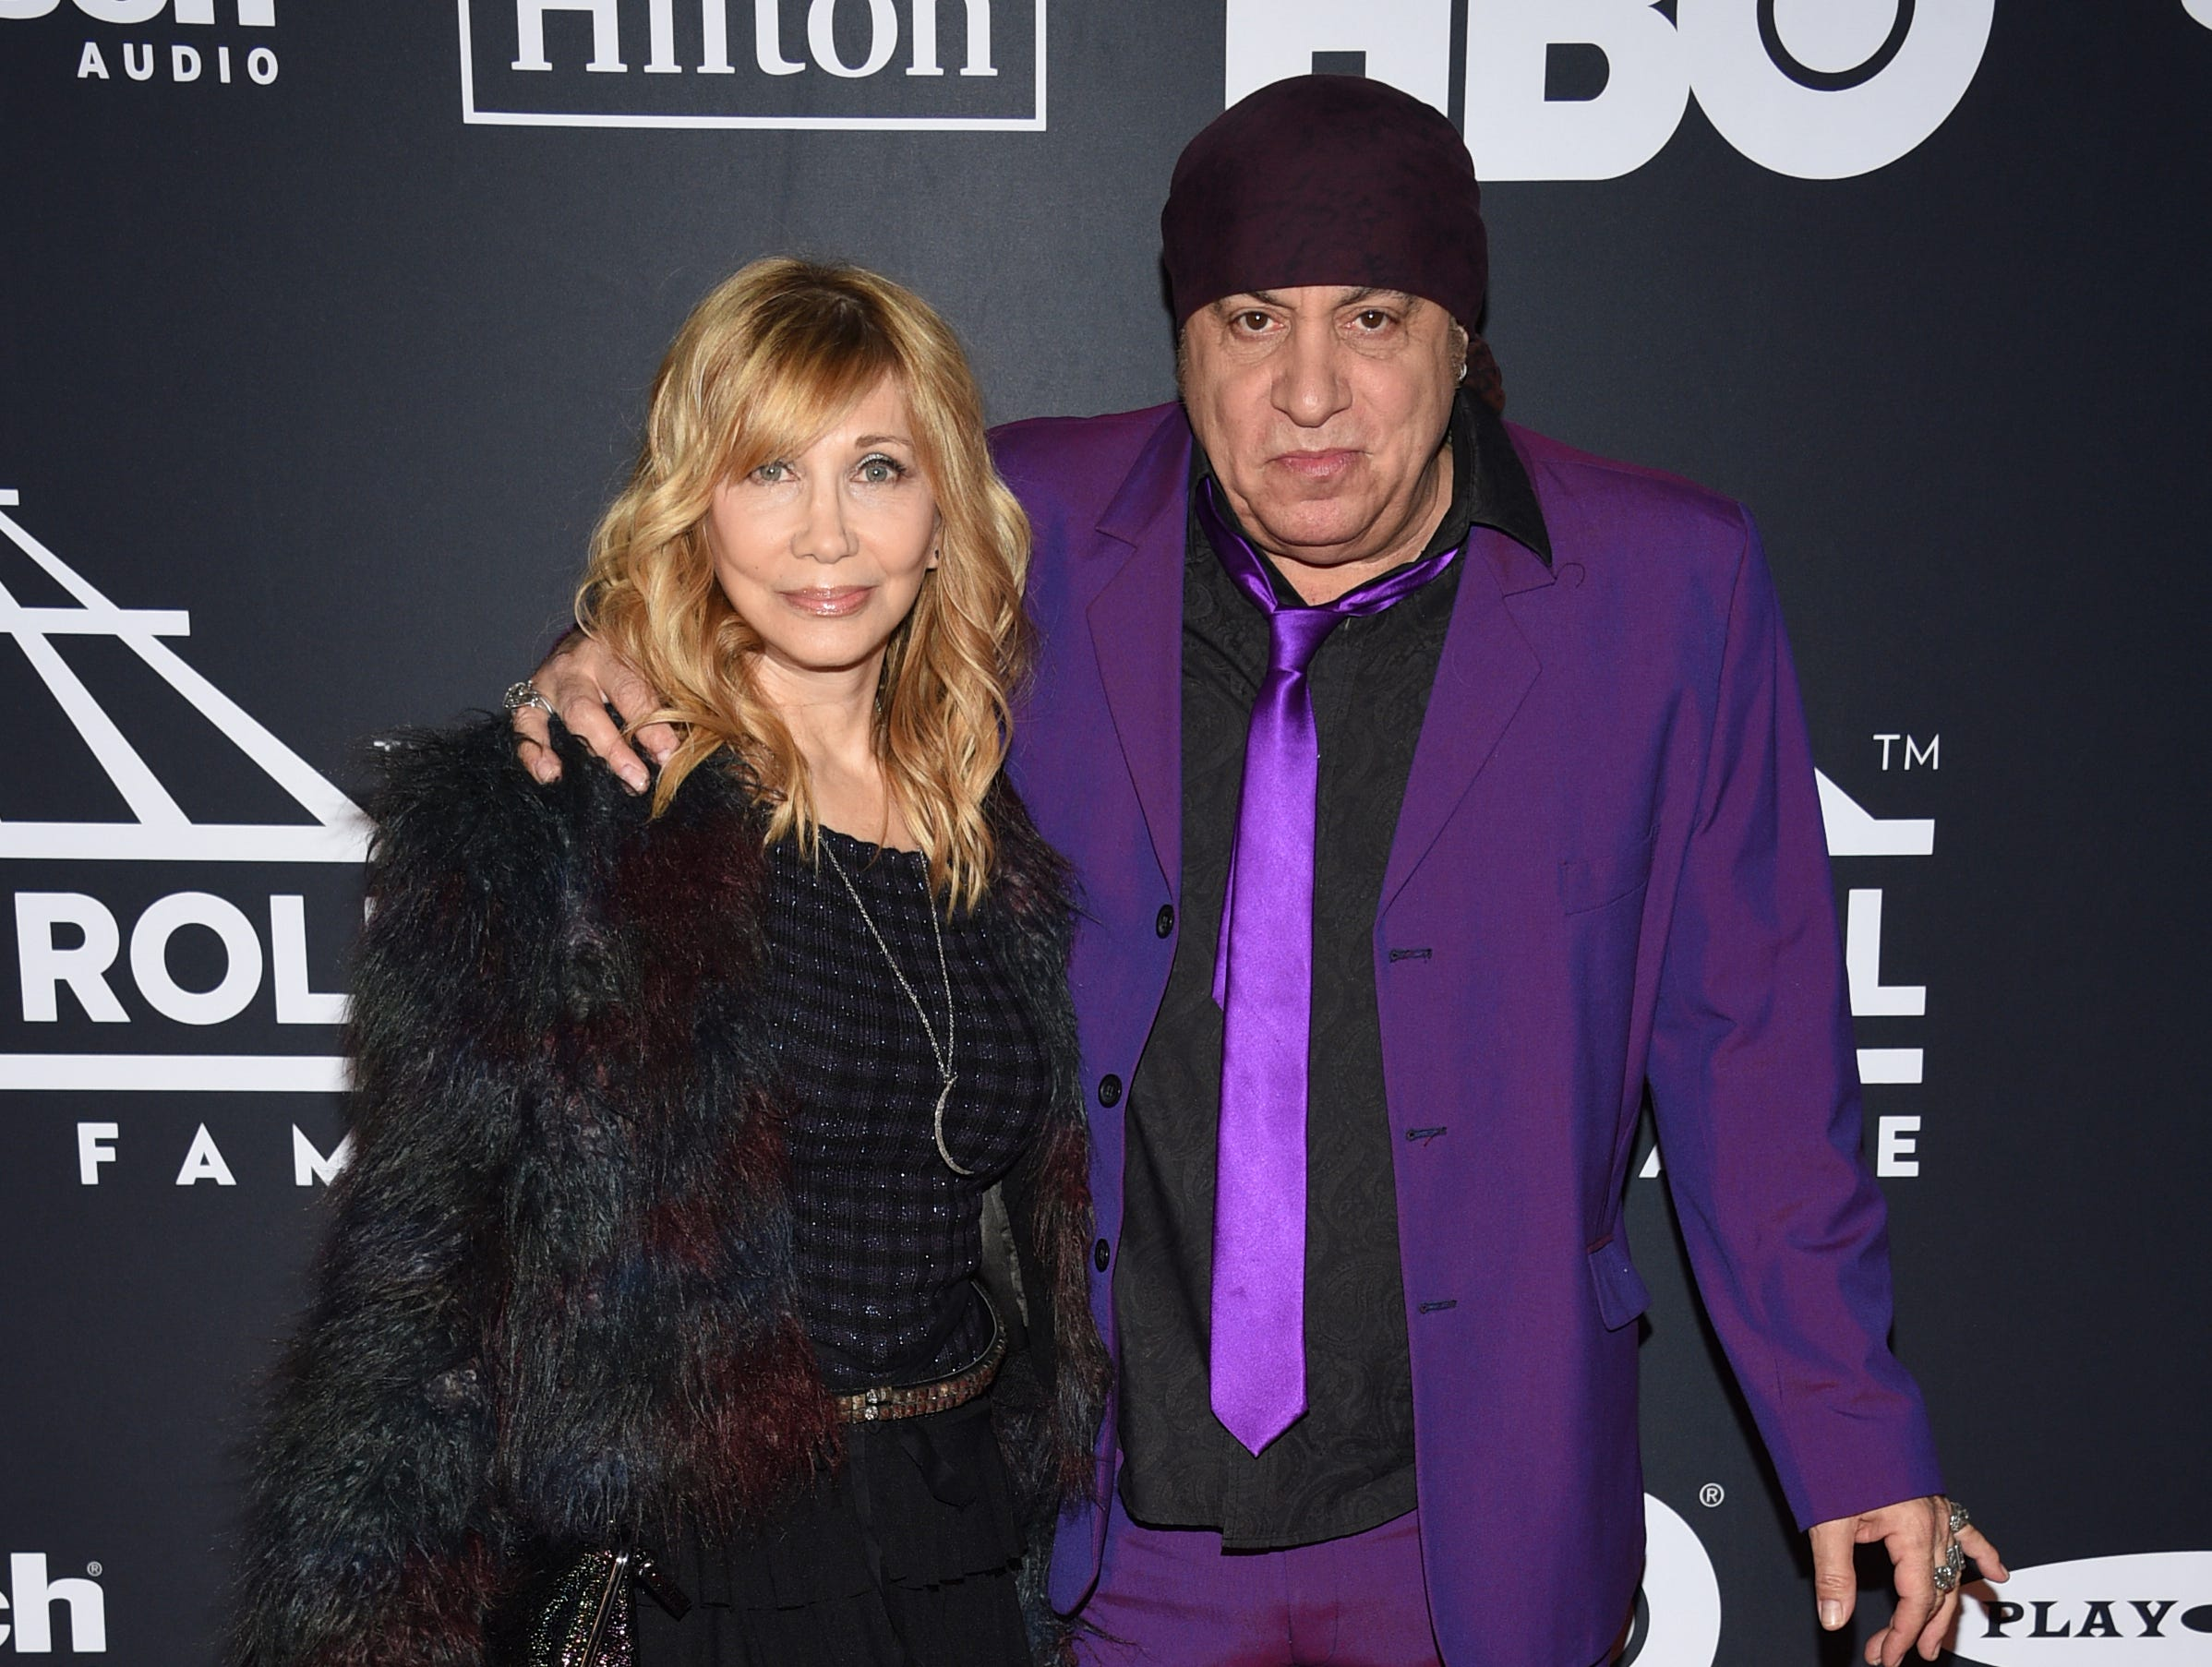 Steven Van Zandt, right, and Maureen Van Zandt arrive at the Rock & Roll Hall of Fame induction ceremony at the Barclays Center on Friday, March 29, 2019, in New York. (Photo by Evan Agostini/Invision/AP) ORG XMIT: NYPM117